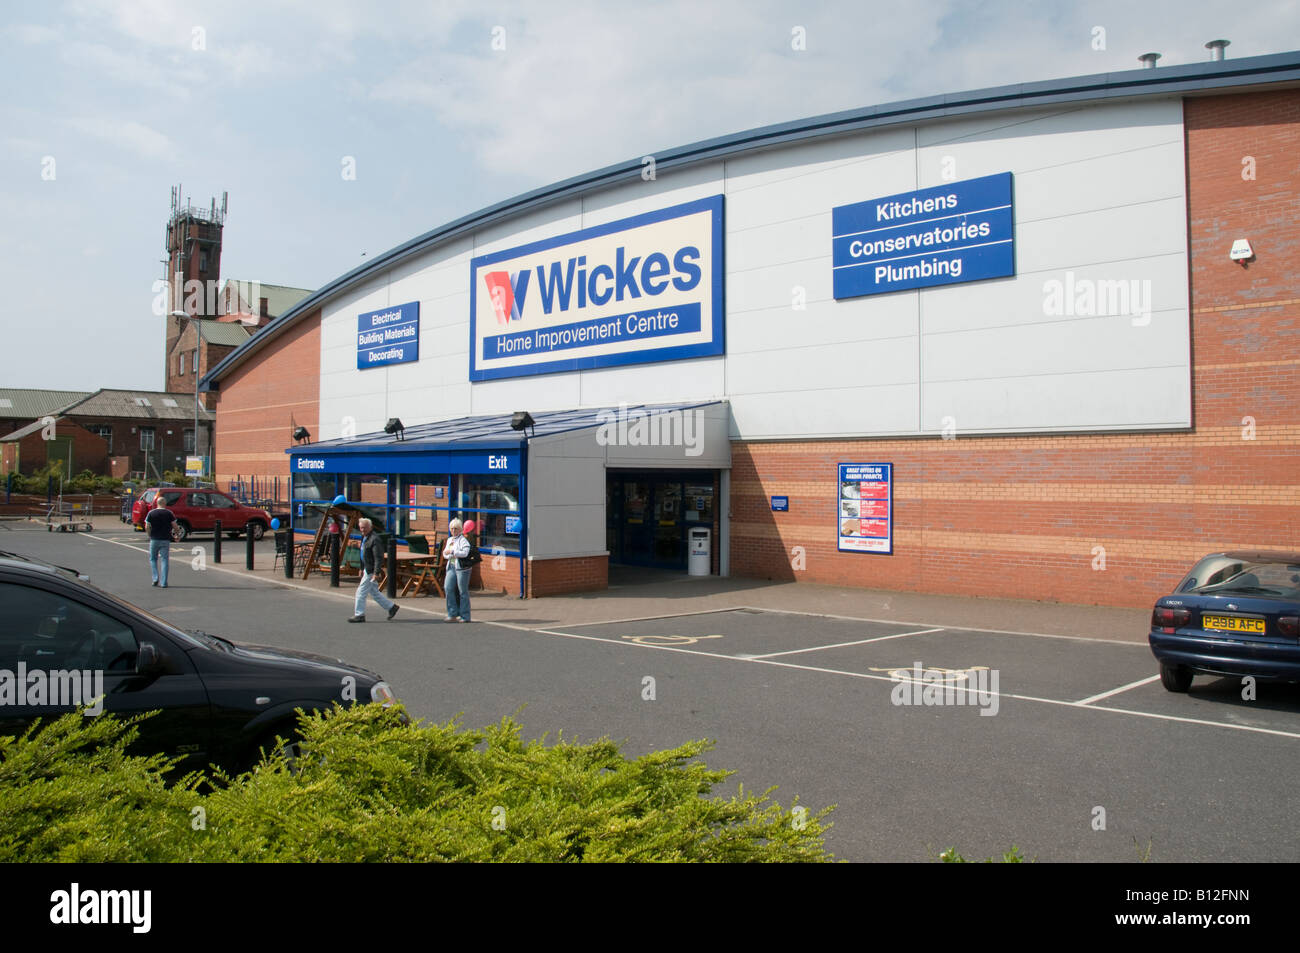 Wickes Diy Store Stock Photos Amp Wickes Diy Store Stock